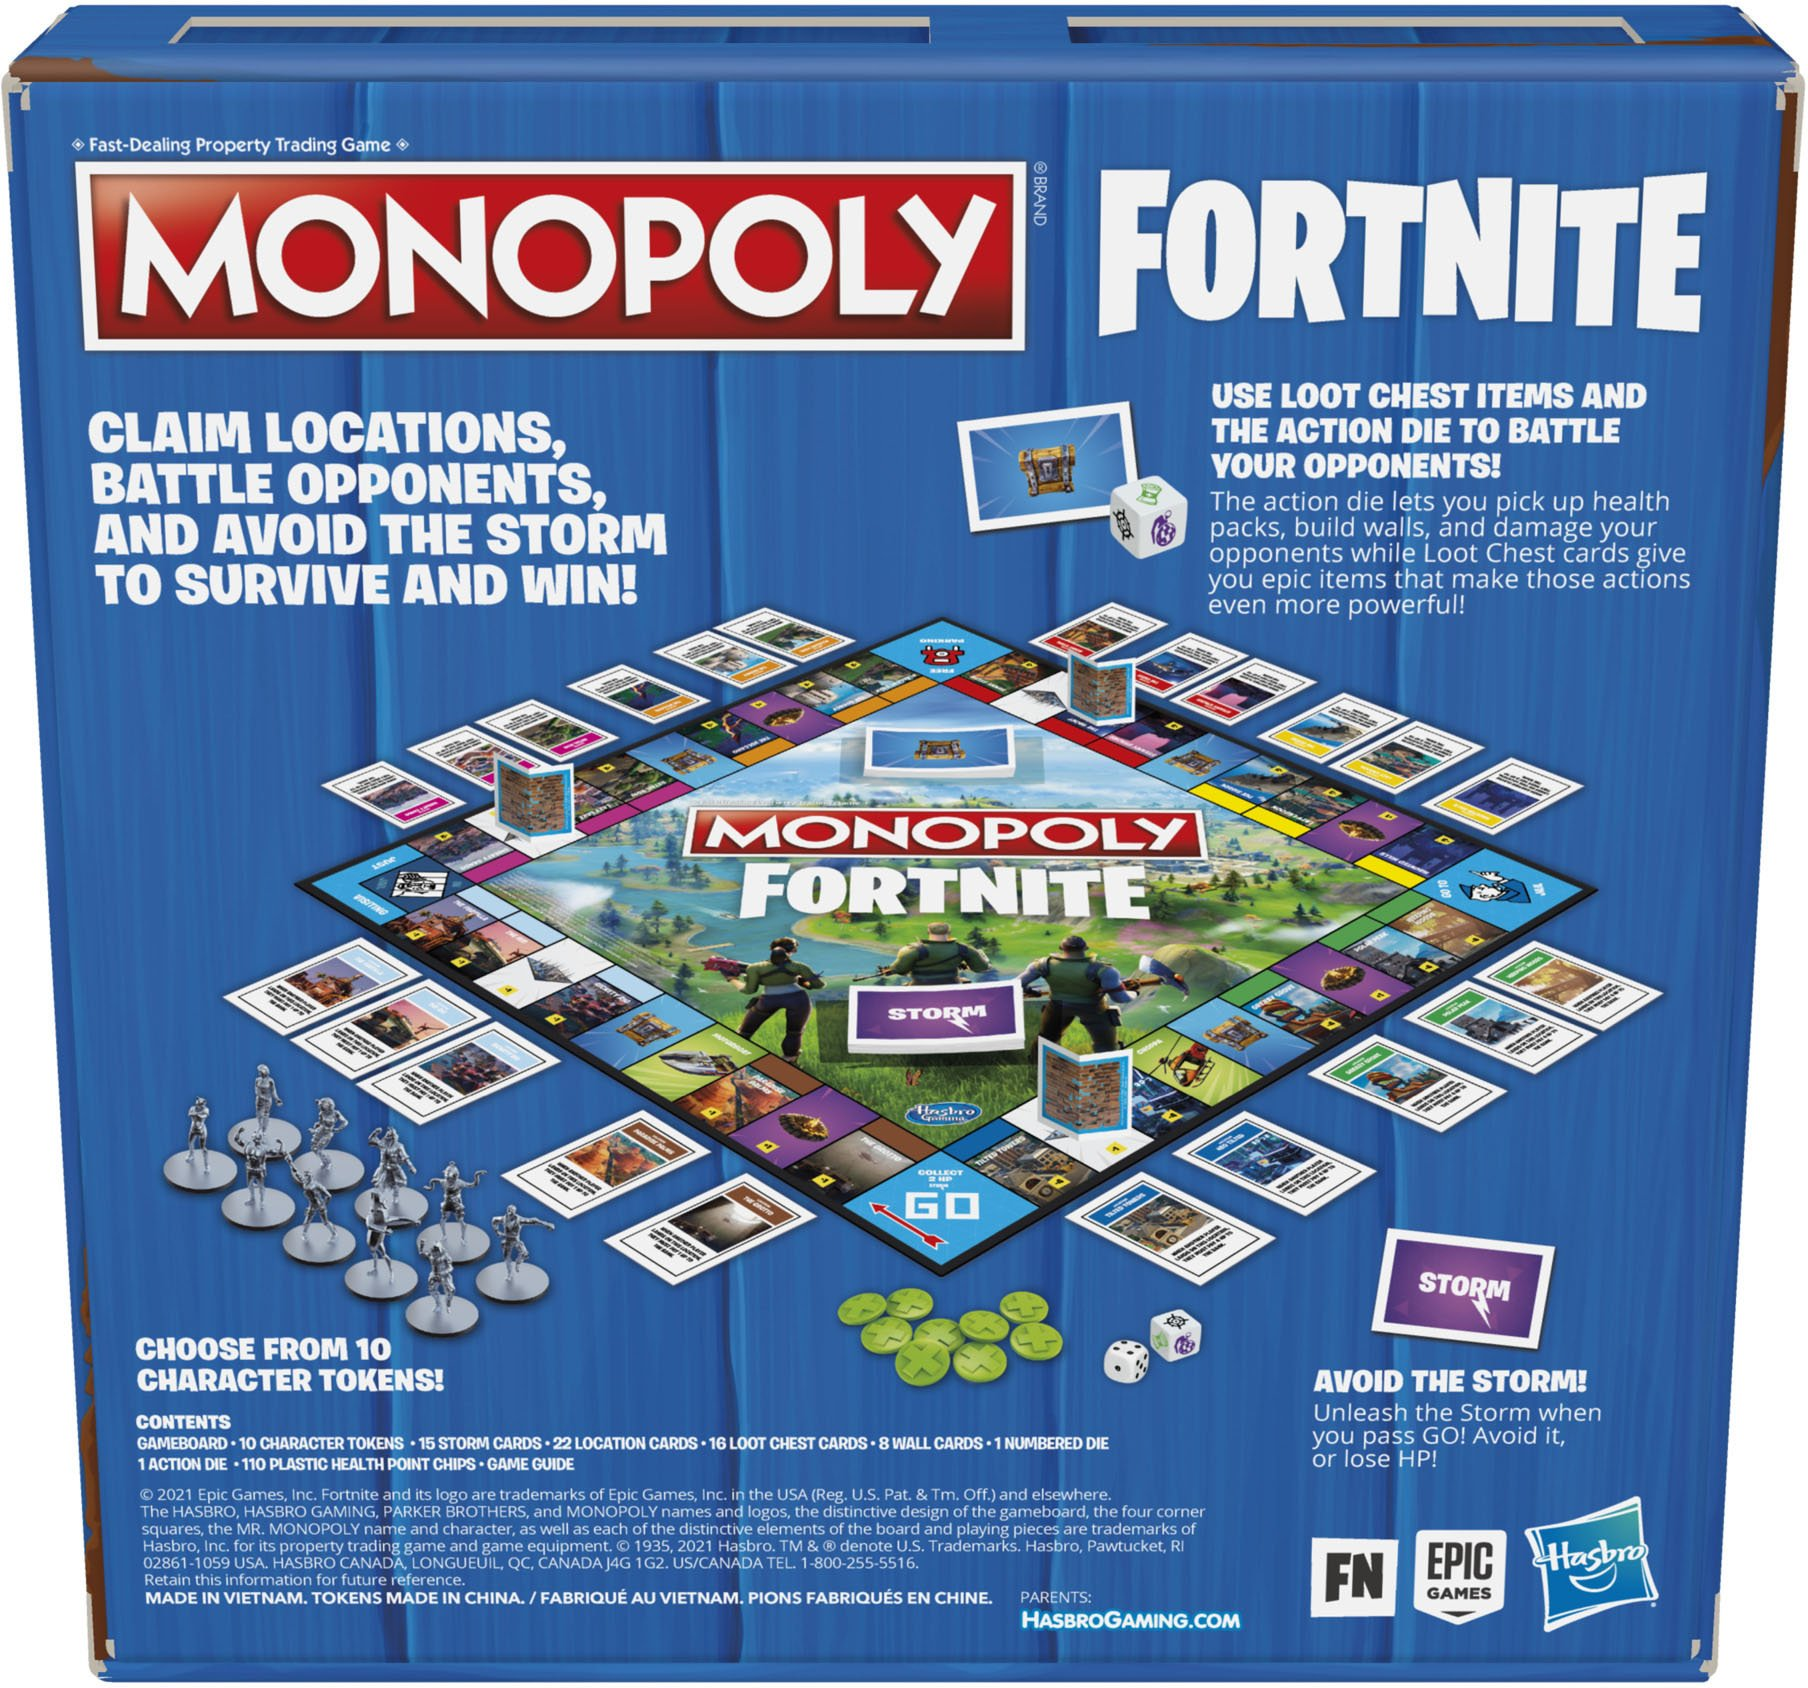 Fortnite reveals new Monopoly Board Game with early access to unreleased Items